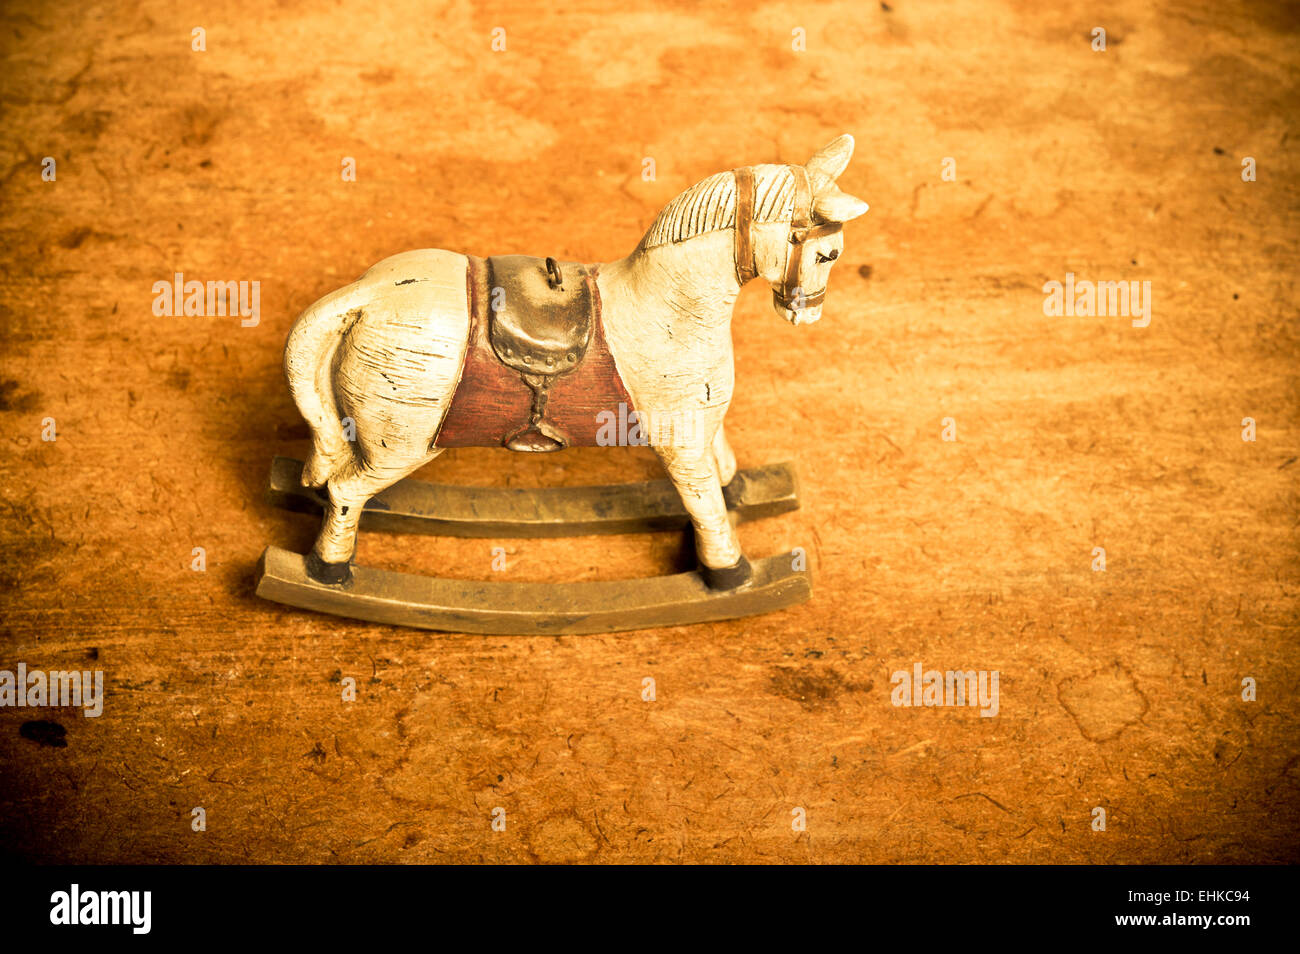 Vintage Wooden Rocking Horse Toy Stock Photo Alamy